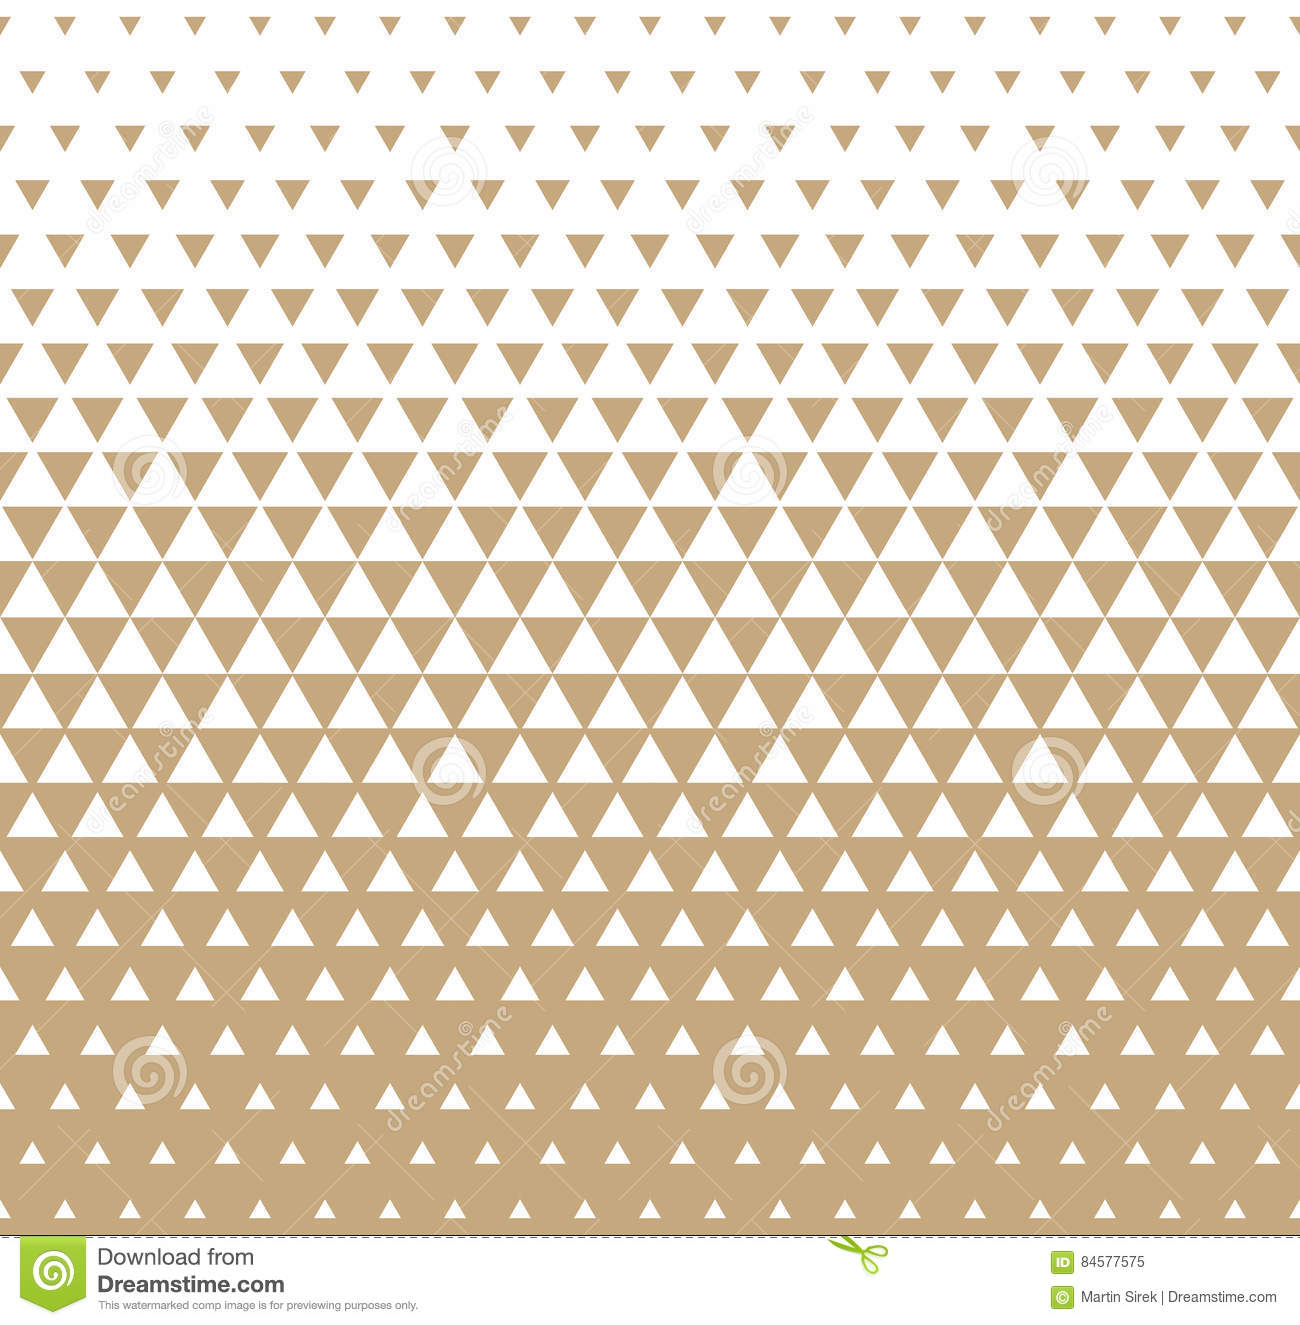 Color halftone printing - Abstract Geometric Golden Graphic Design Print Triangle Halftone Pattern